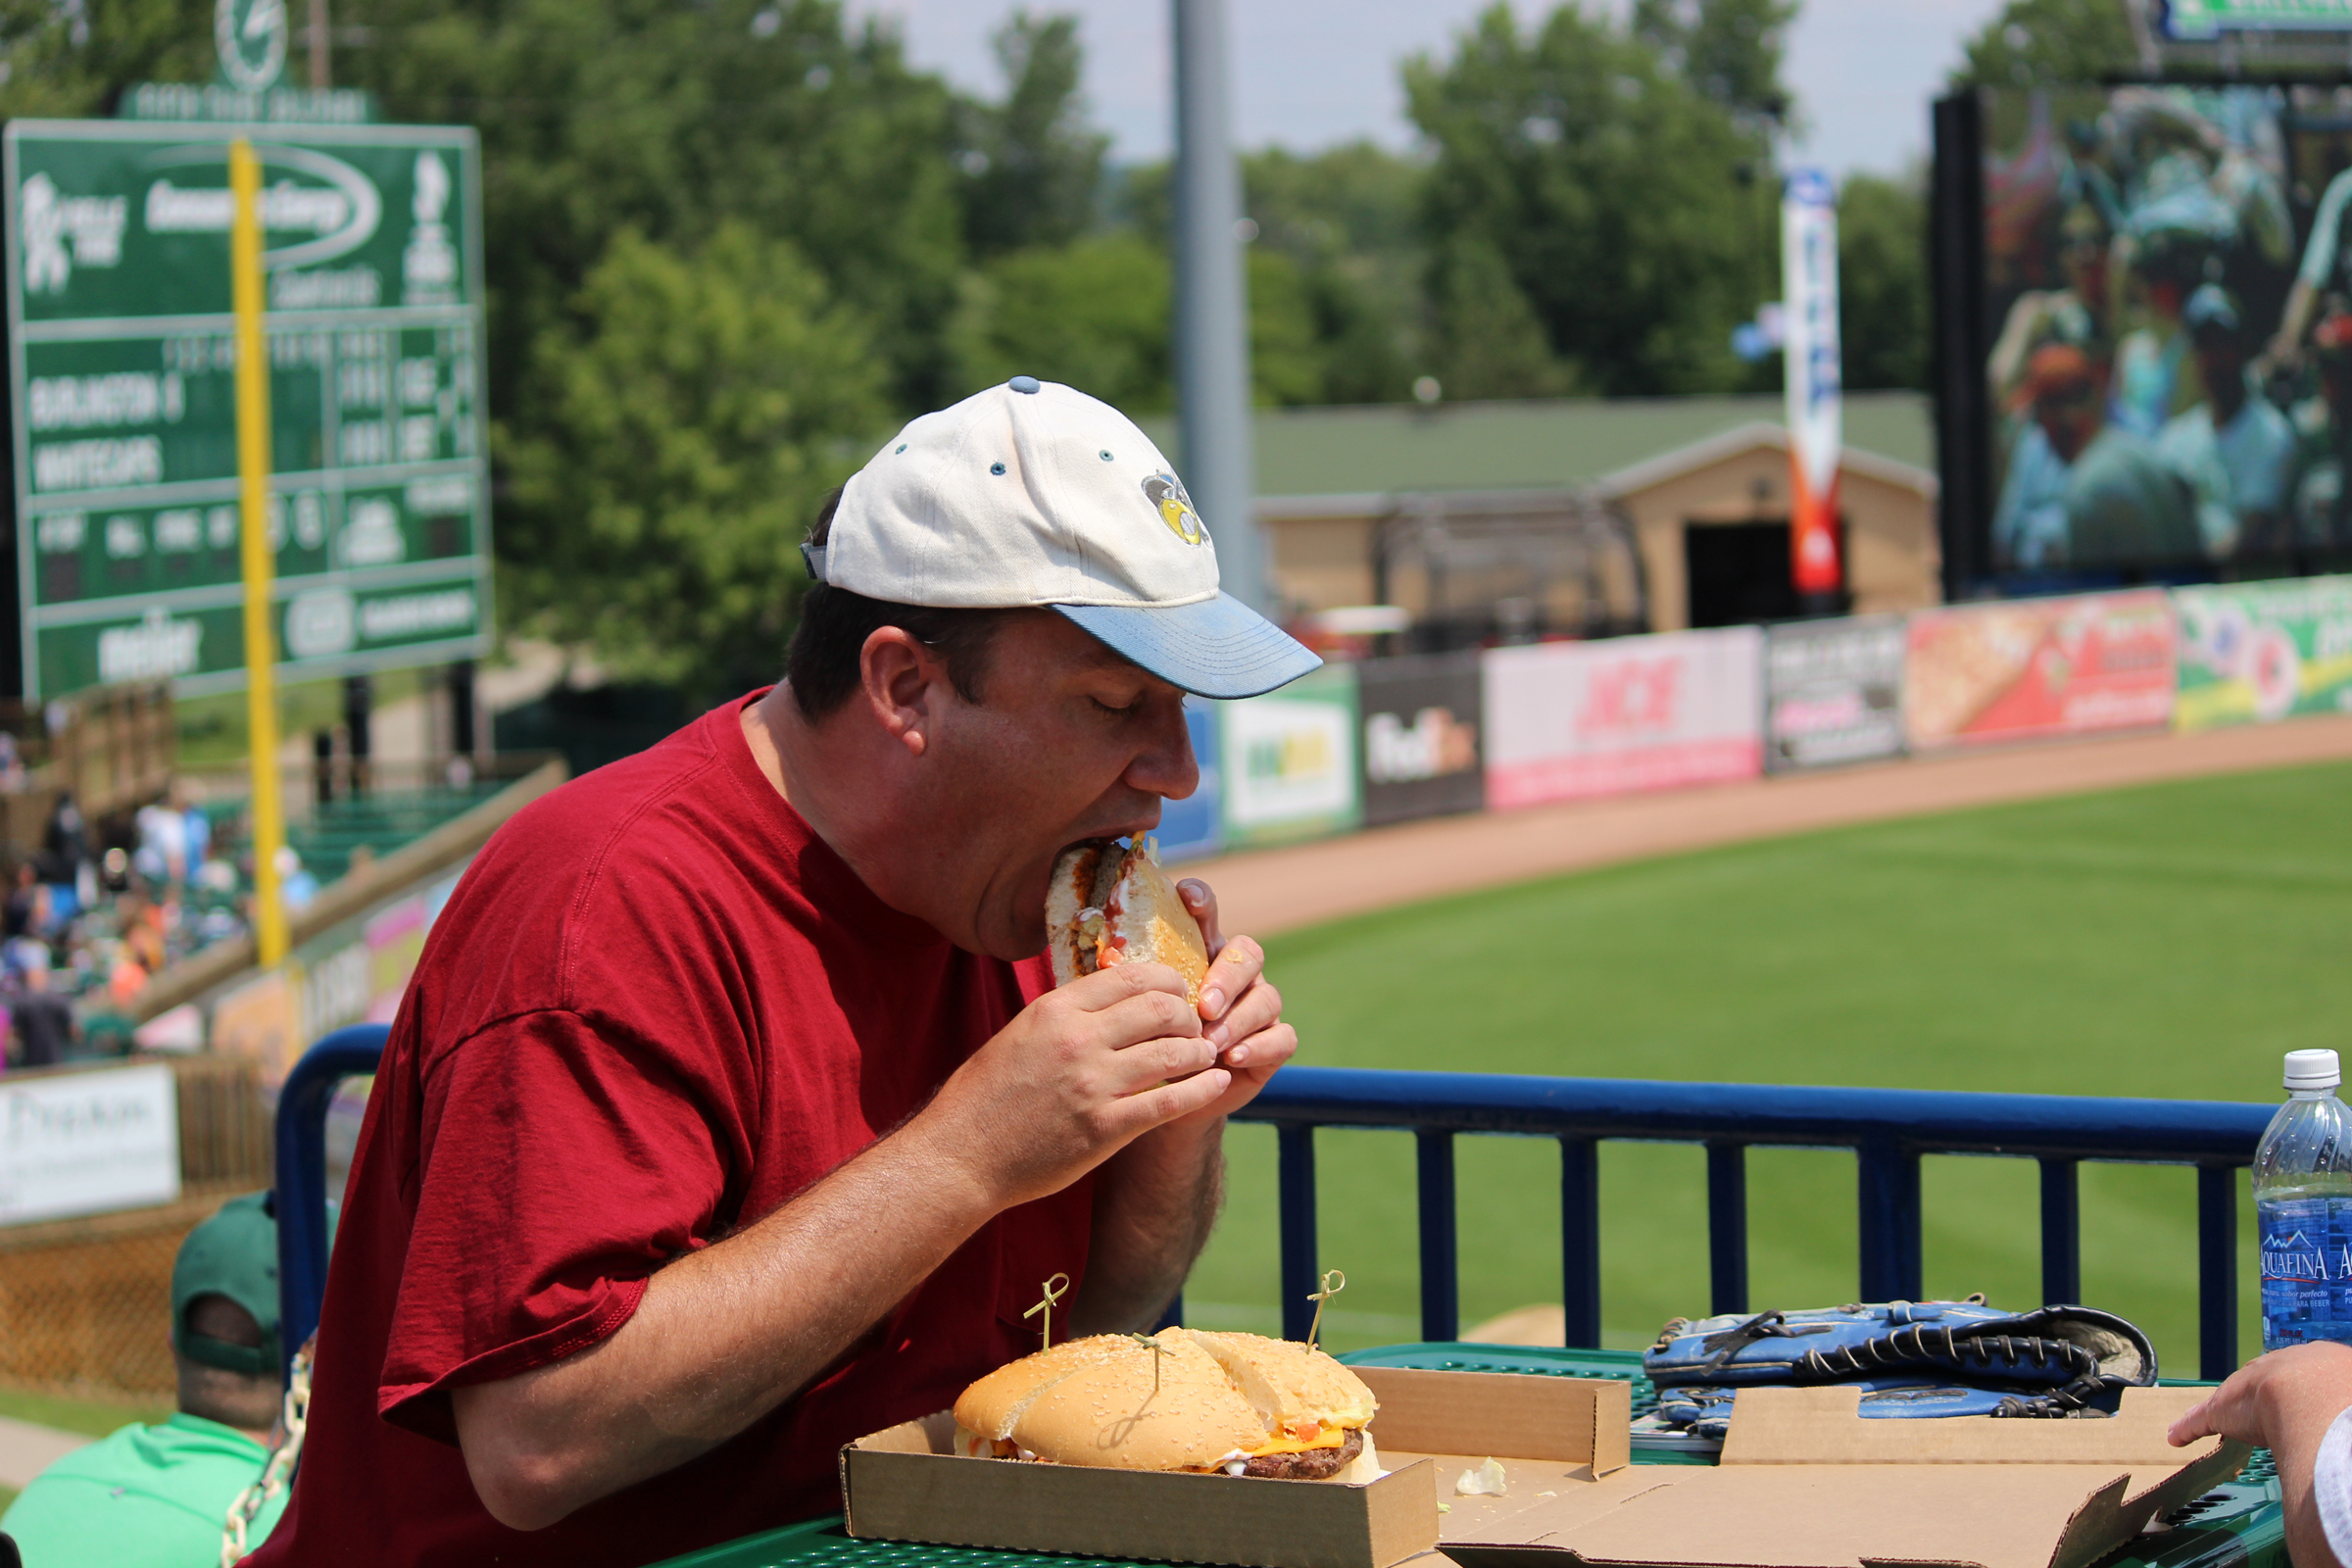 Fan takes on the Fifth Third Burger challenge.